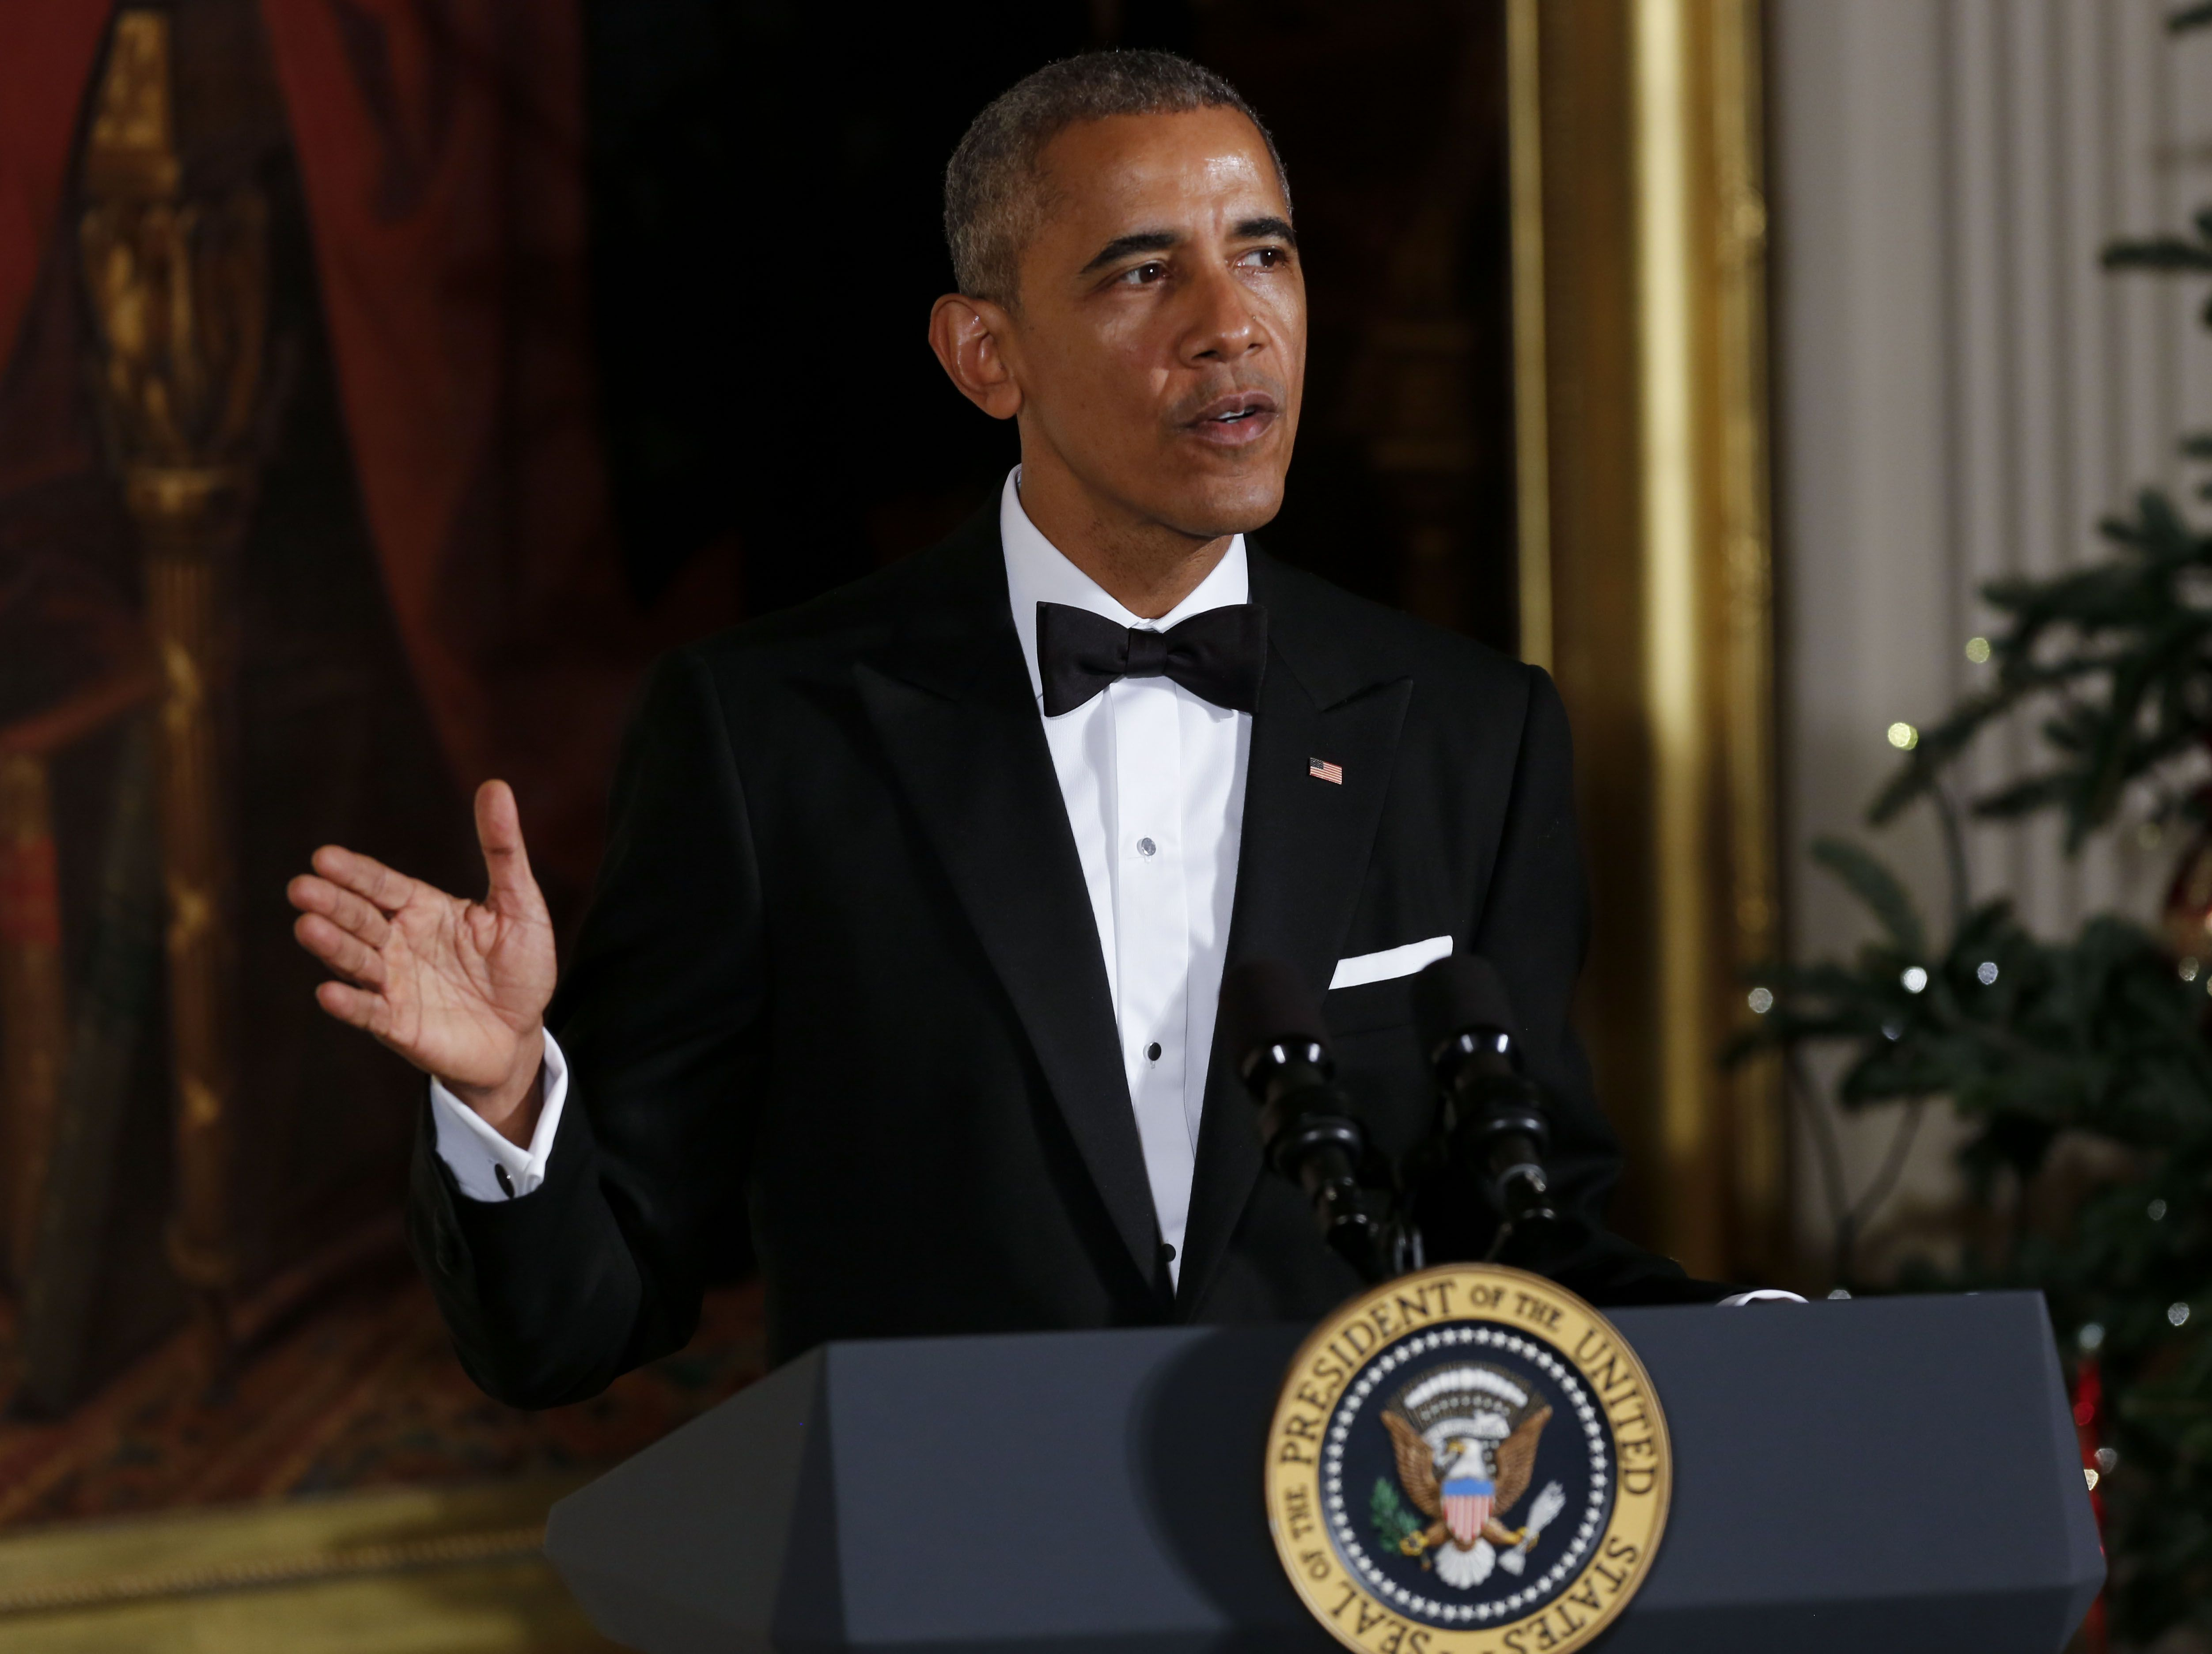 President Barack Obama at a ceremony for the 2016 Kennedy Center honorees on December 4, 2016.